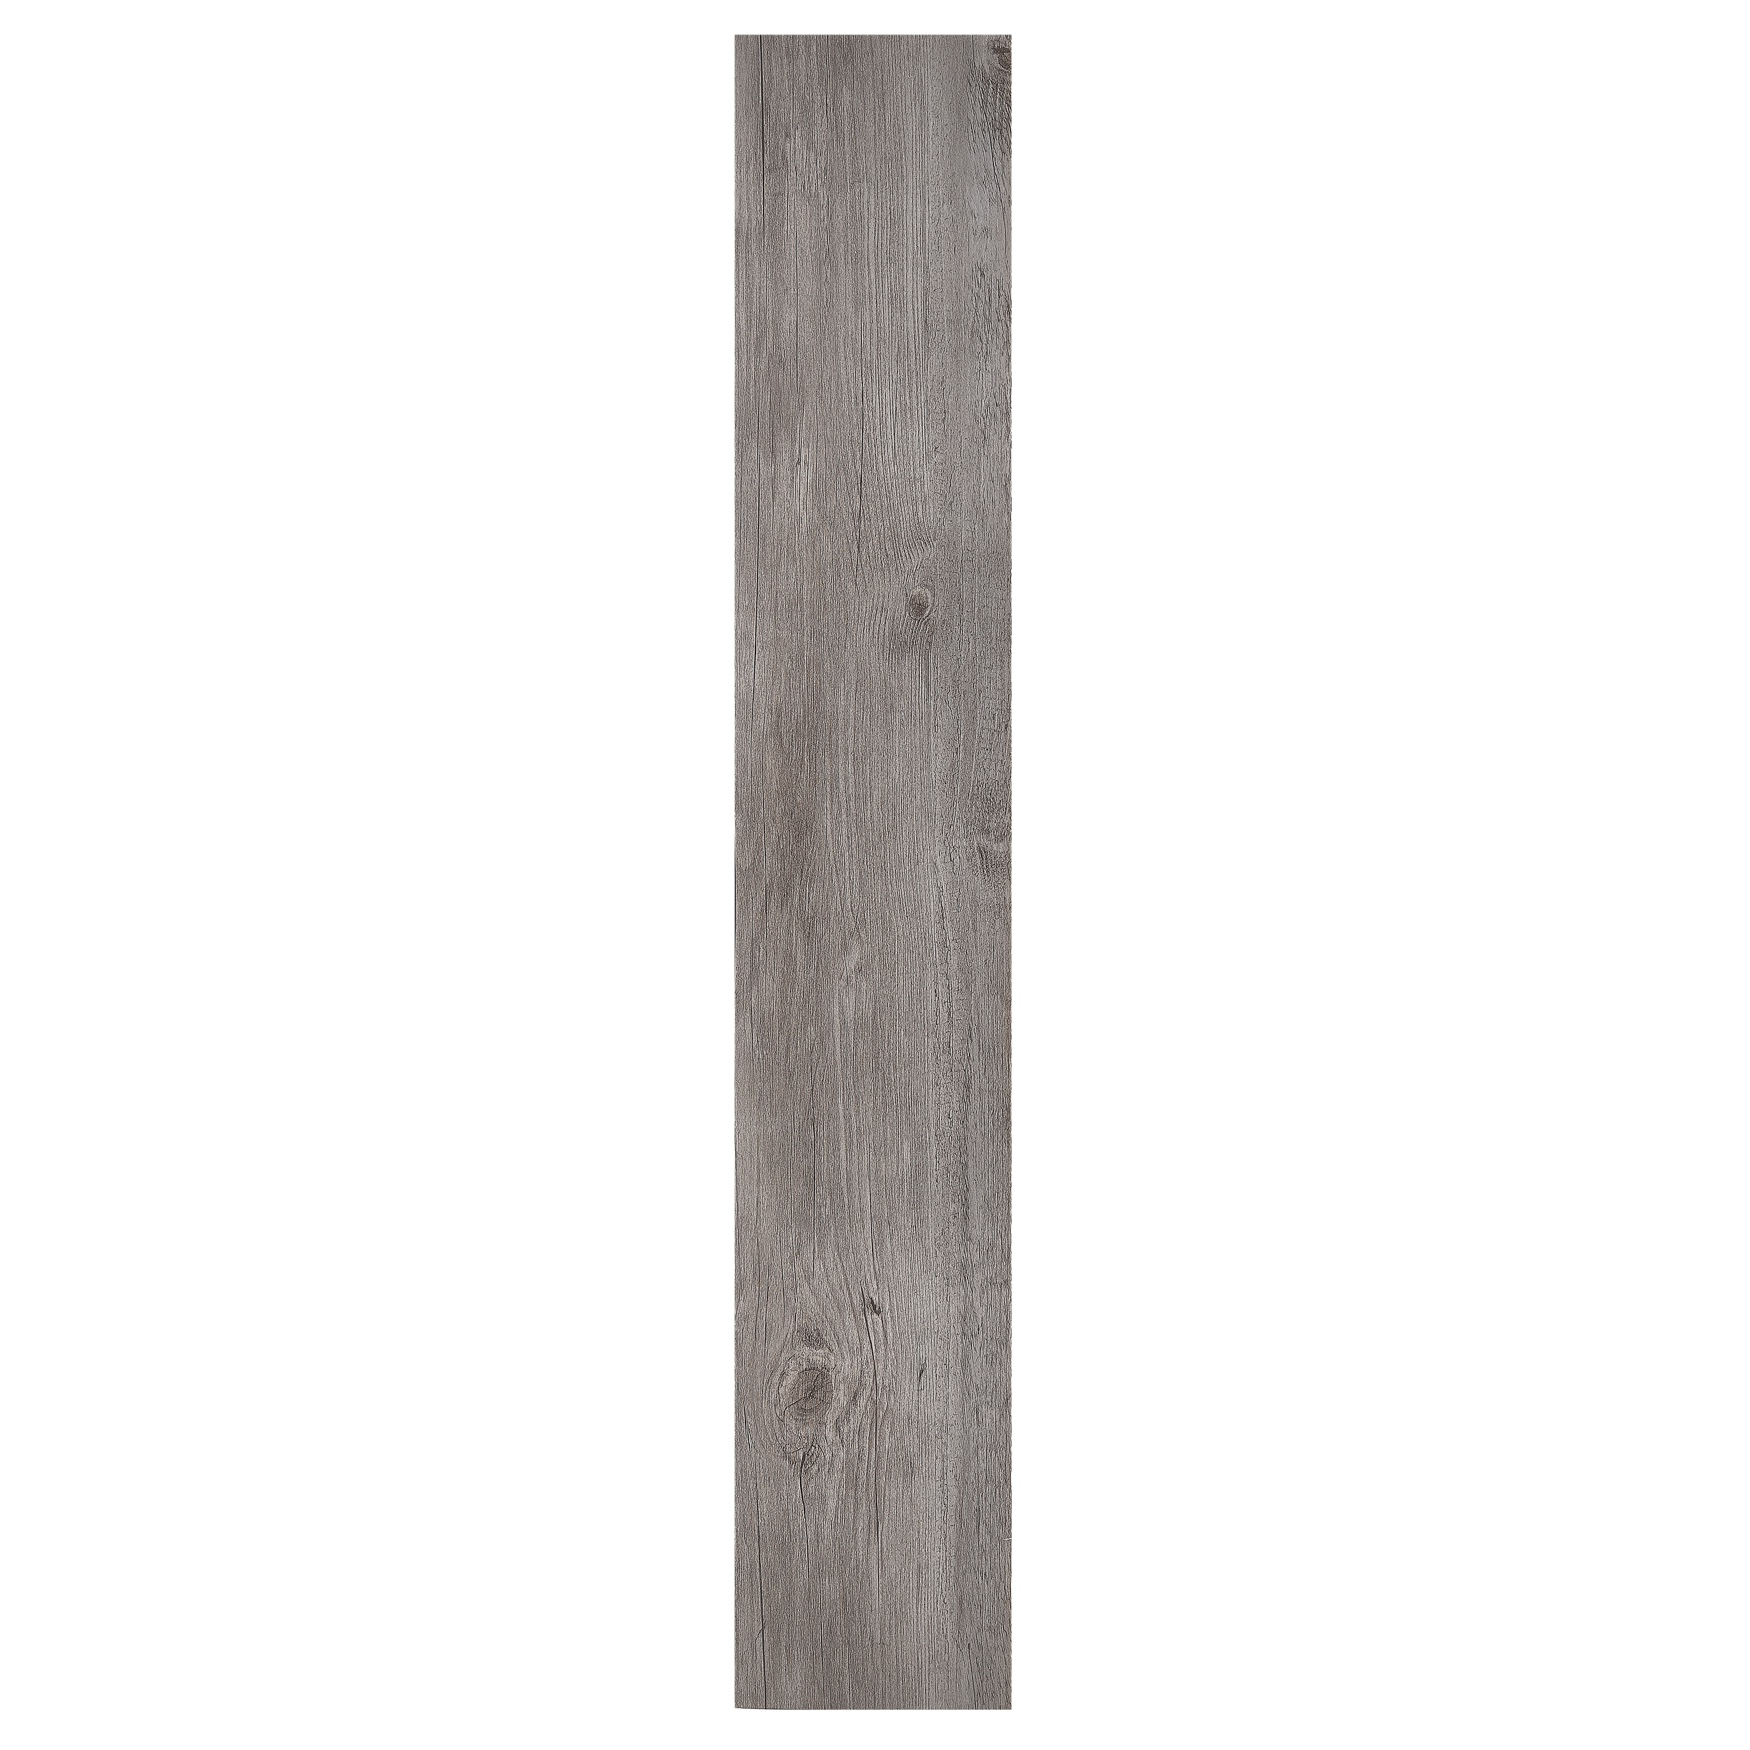 "Sterling 6"" x 36"" 2.0mm Self Adhesive Vinyl Floor Planks,"